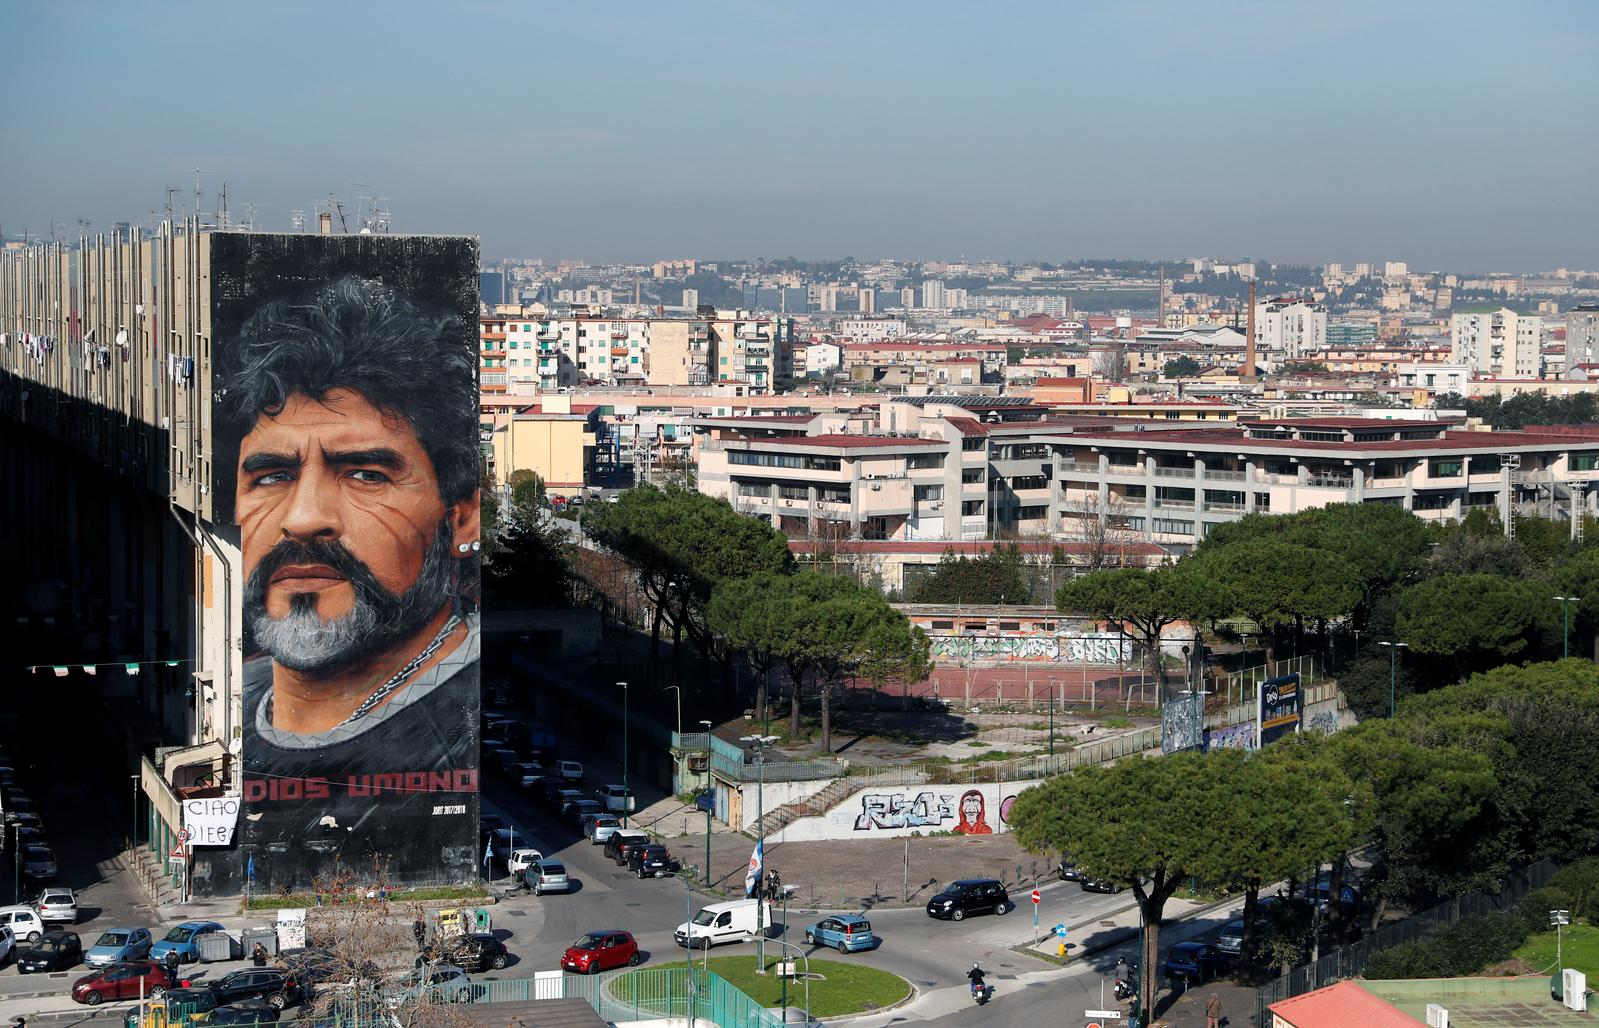 A general view shows a mural by artist Jorit depicting late Argentine soccer legend Diego Maradona, in Naples, Italy November 26, 2020. Photo: Reuters